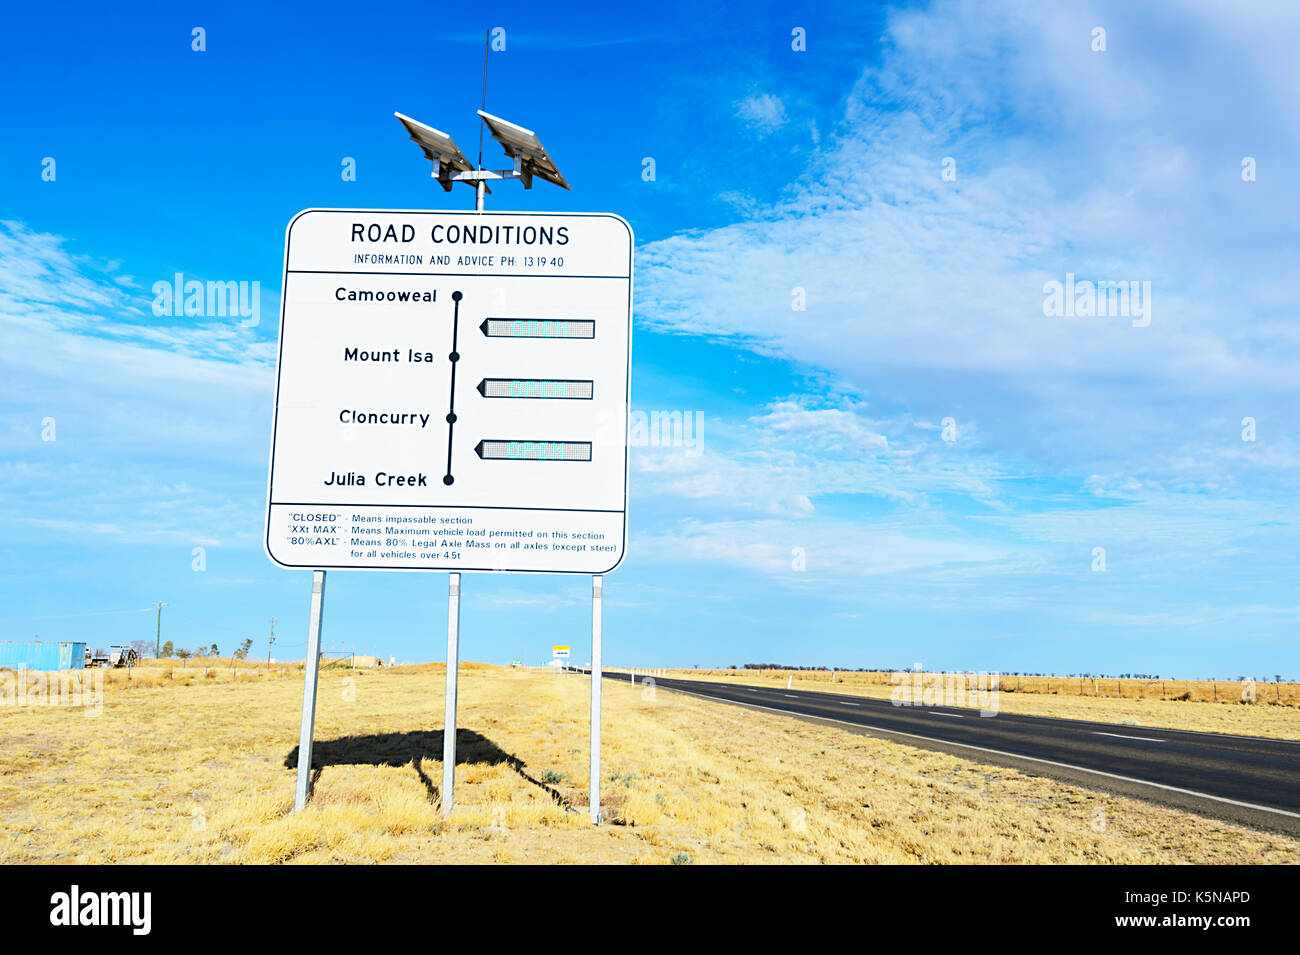 Road Conditions sign near Julia Creek, Queensland, QLD, Australia - Stock Image